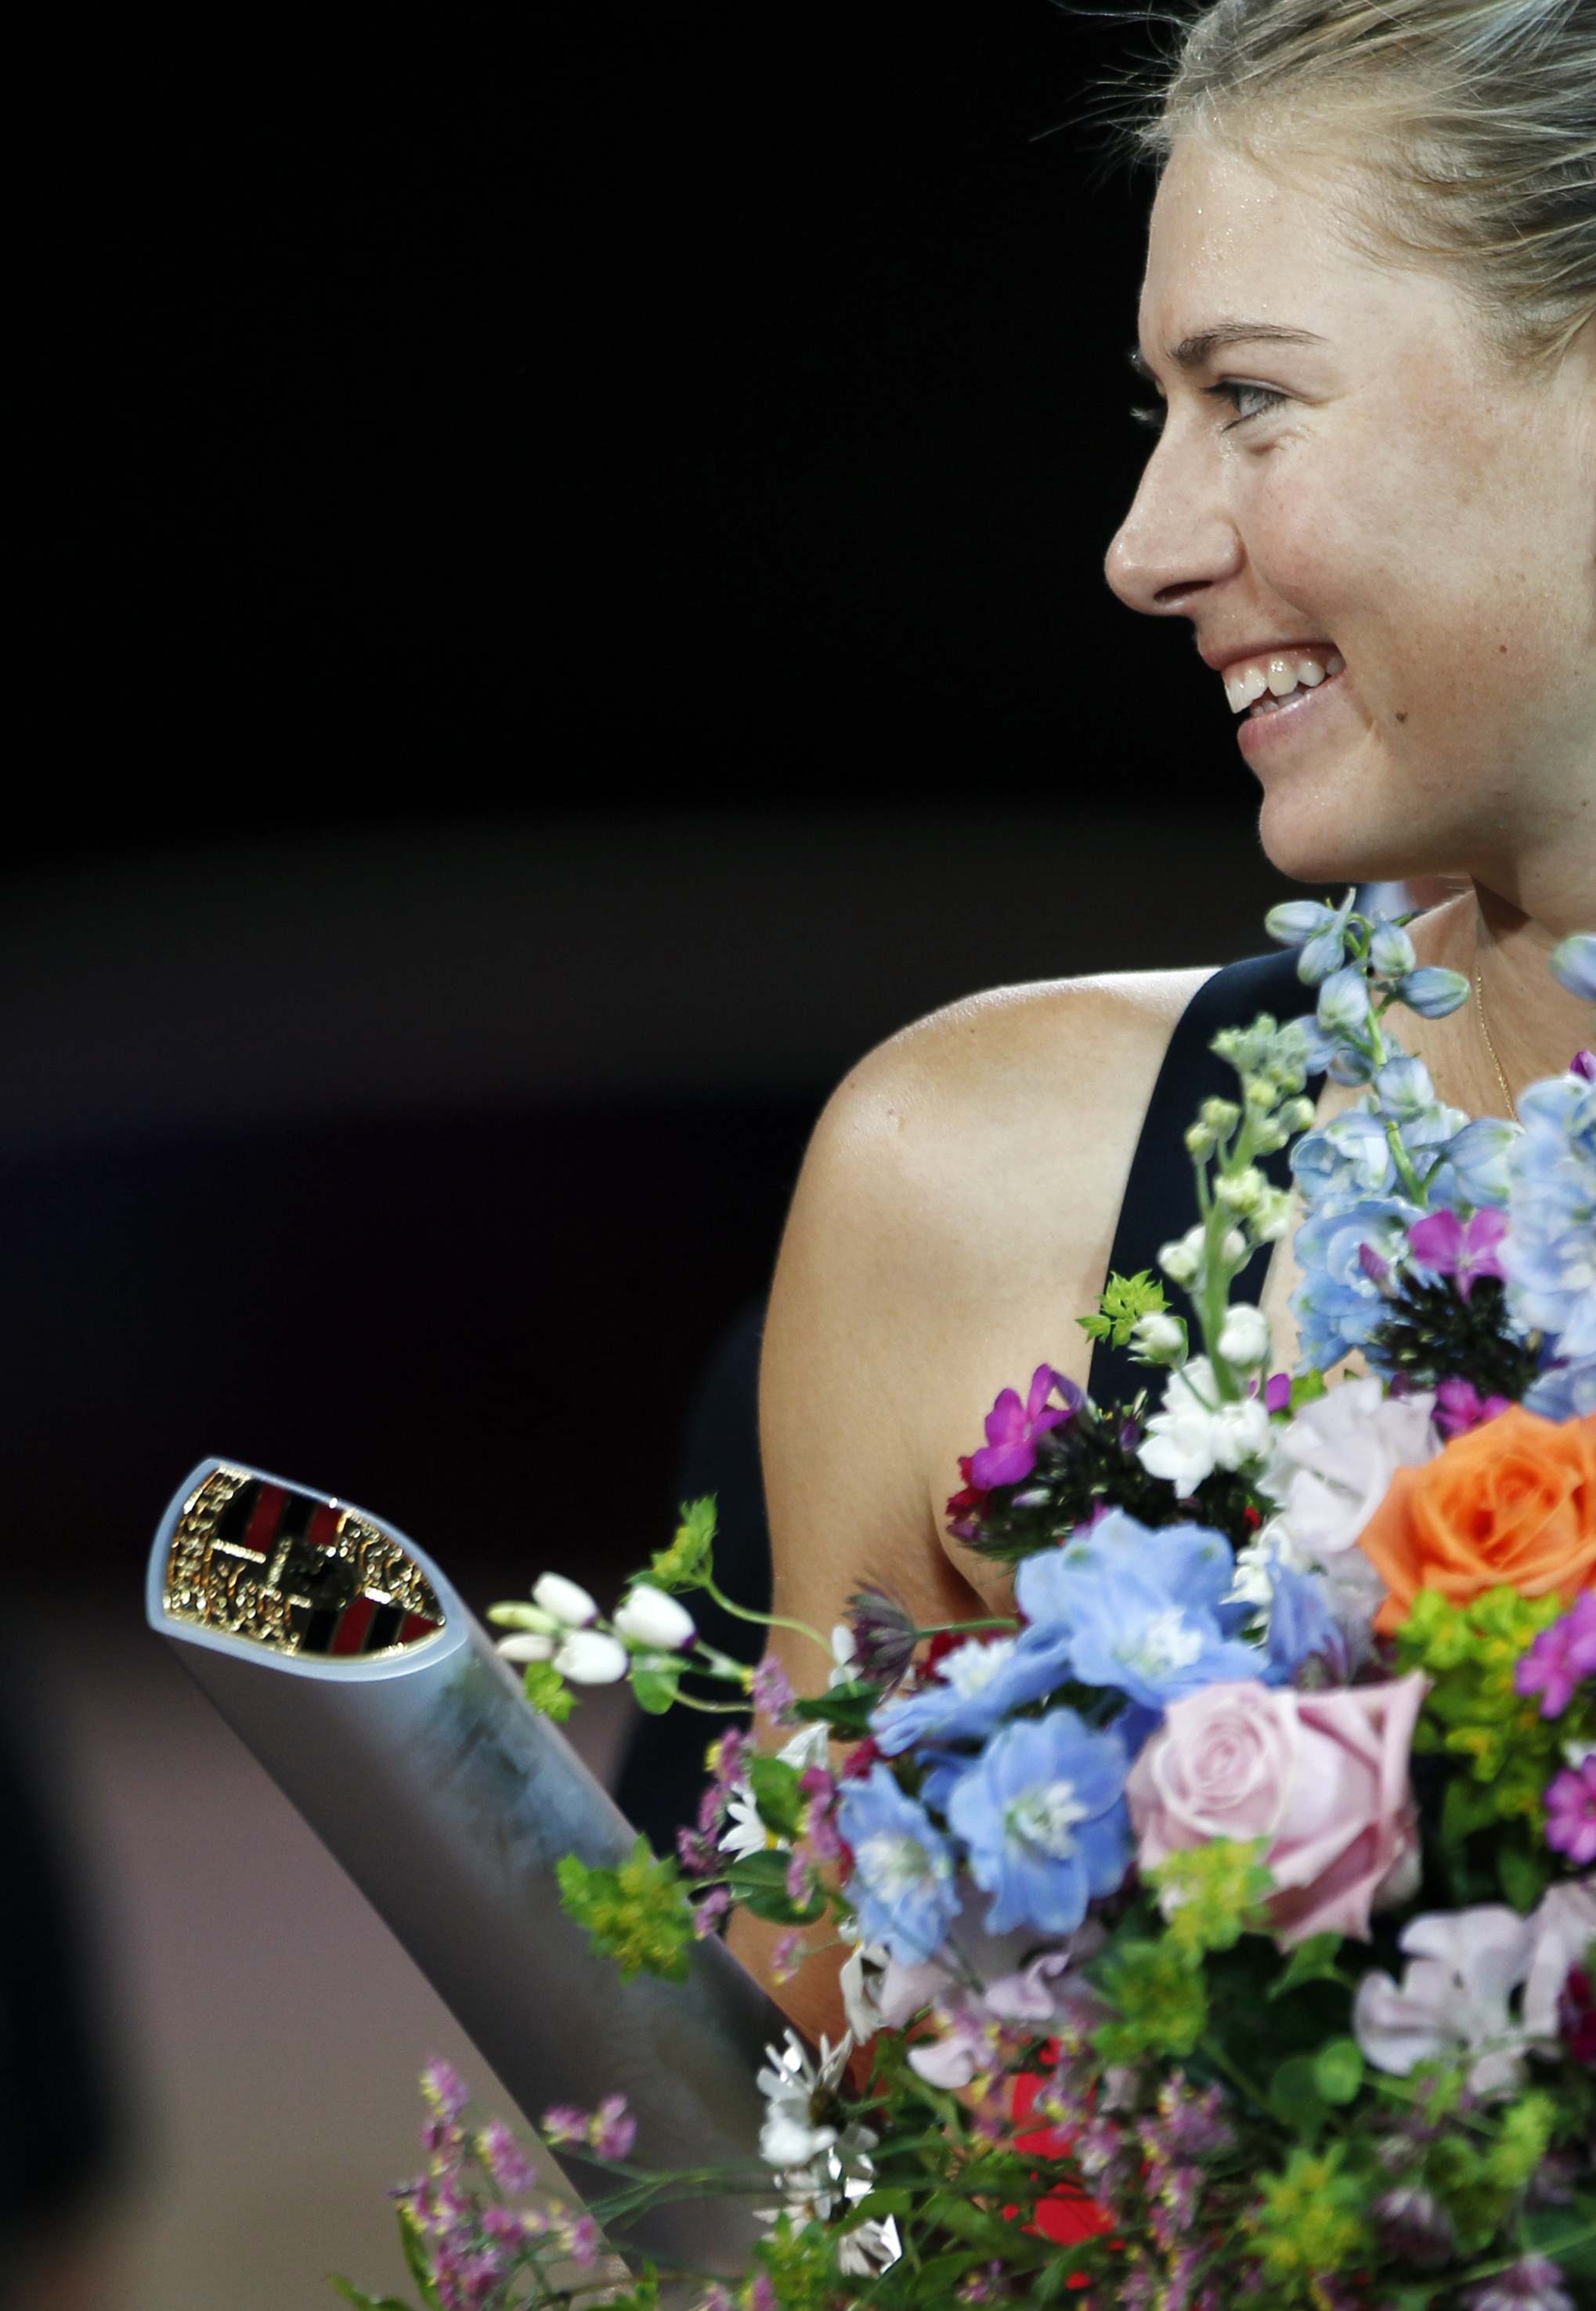 http://media.zenfs.com/en_us/News/Reuters/2012-04-29T184921Z_969288945_GM1E84U084G01_RTRMADP_3_TENNIS-WOMEN.JPG